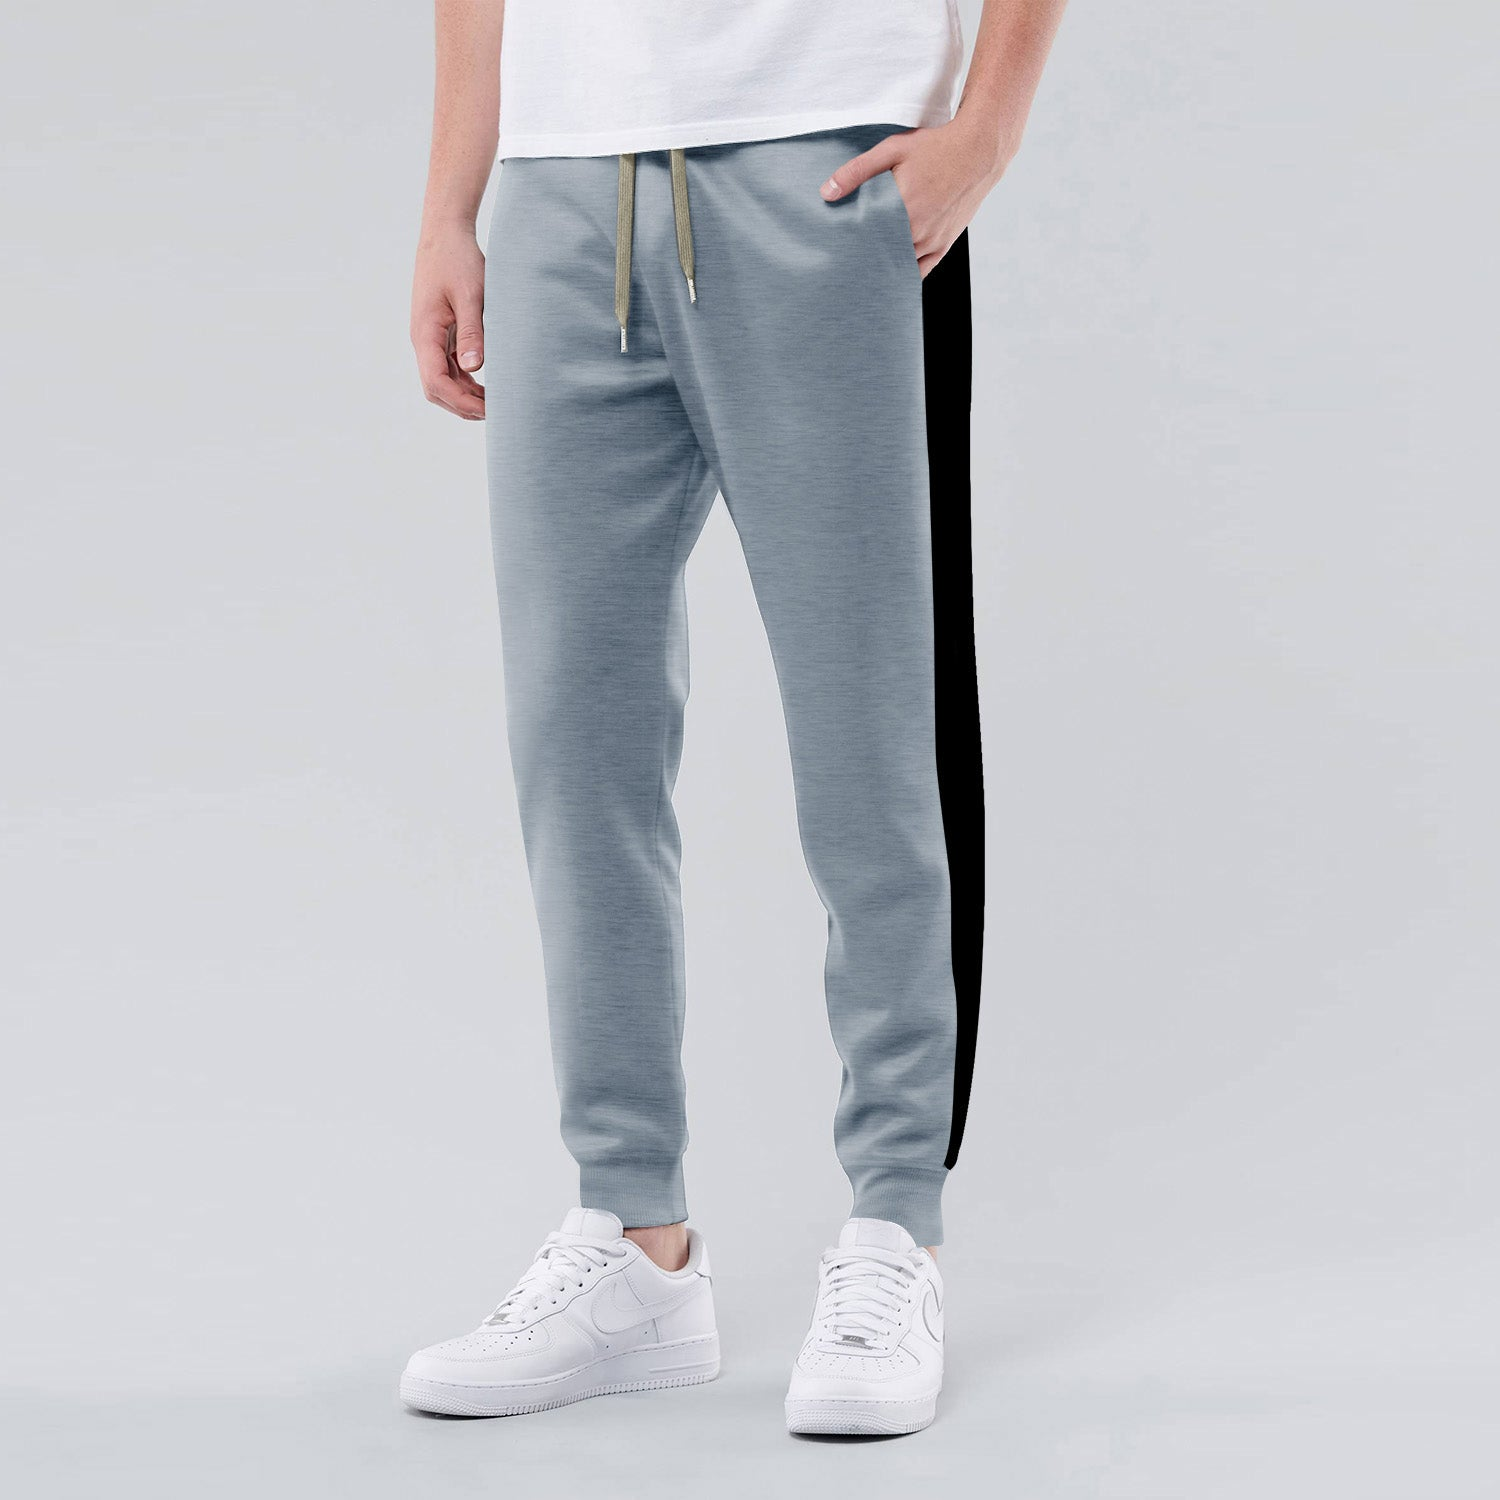 Diesel Summer Slim Fit Panel Trouser For Men-Light Blue Melange & Black Stripe-BE11926